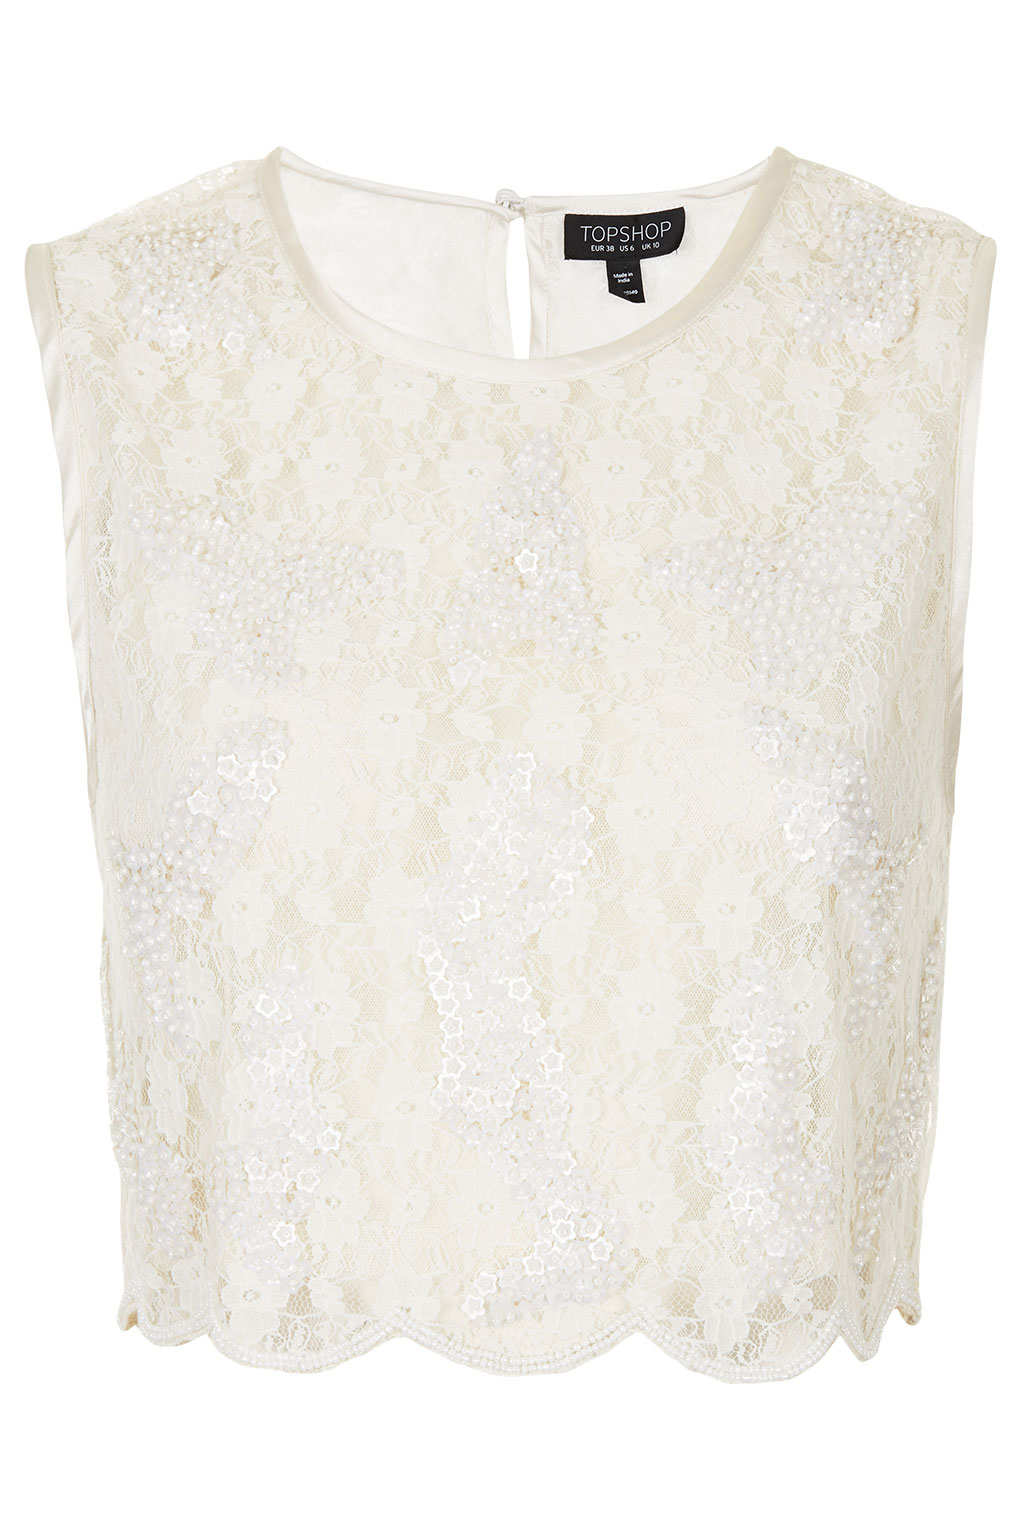 Topshop Daisy Sequin Lace Crop Top In White Lyst